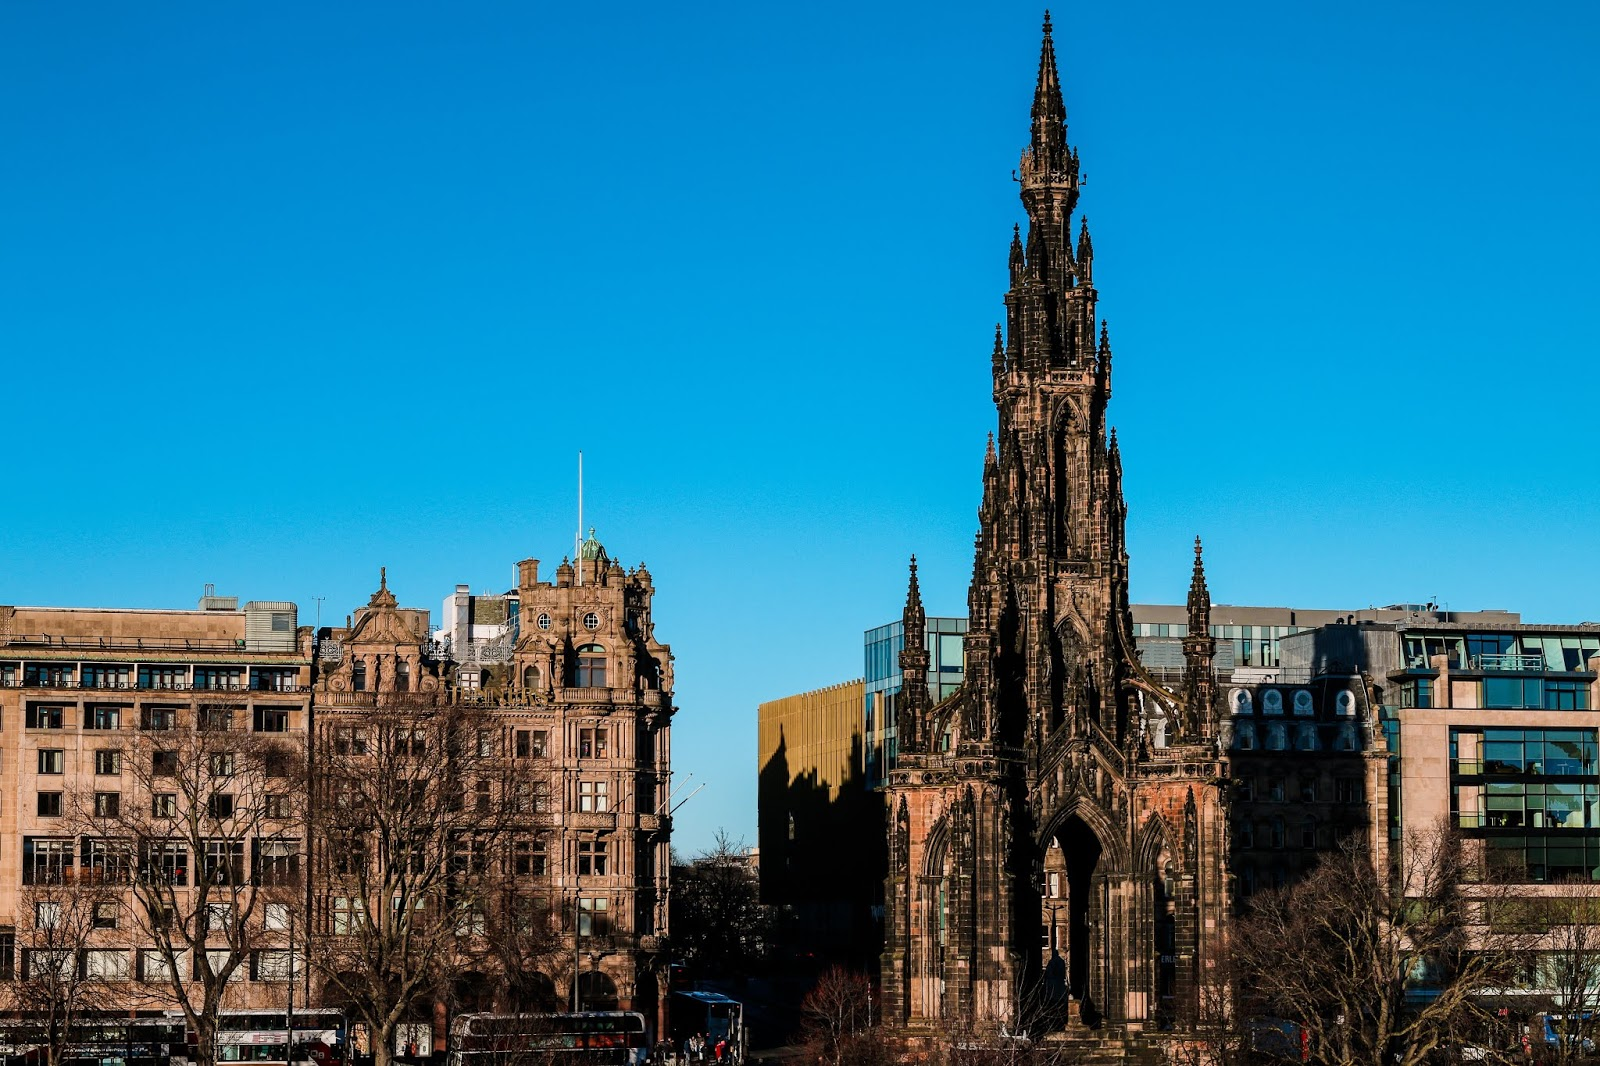 a landscape photo of Edinburgh that shows some buildings in the distance and a blue sky